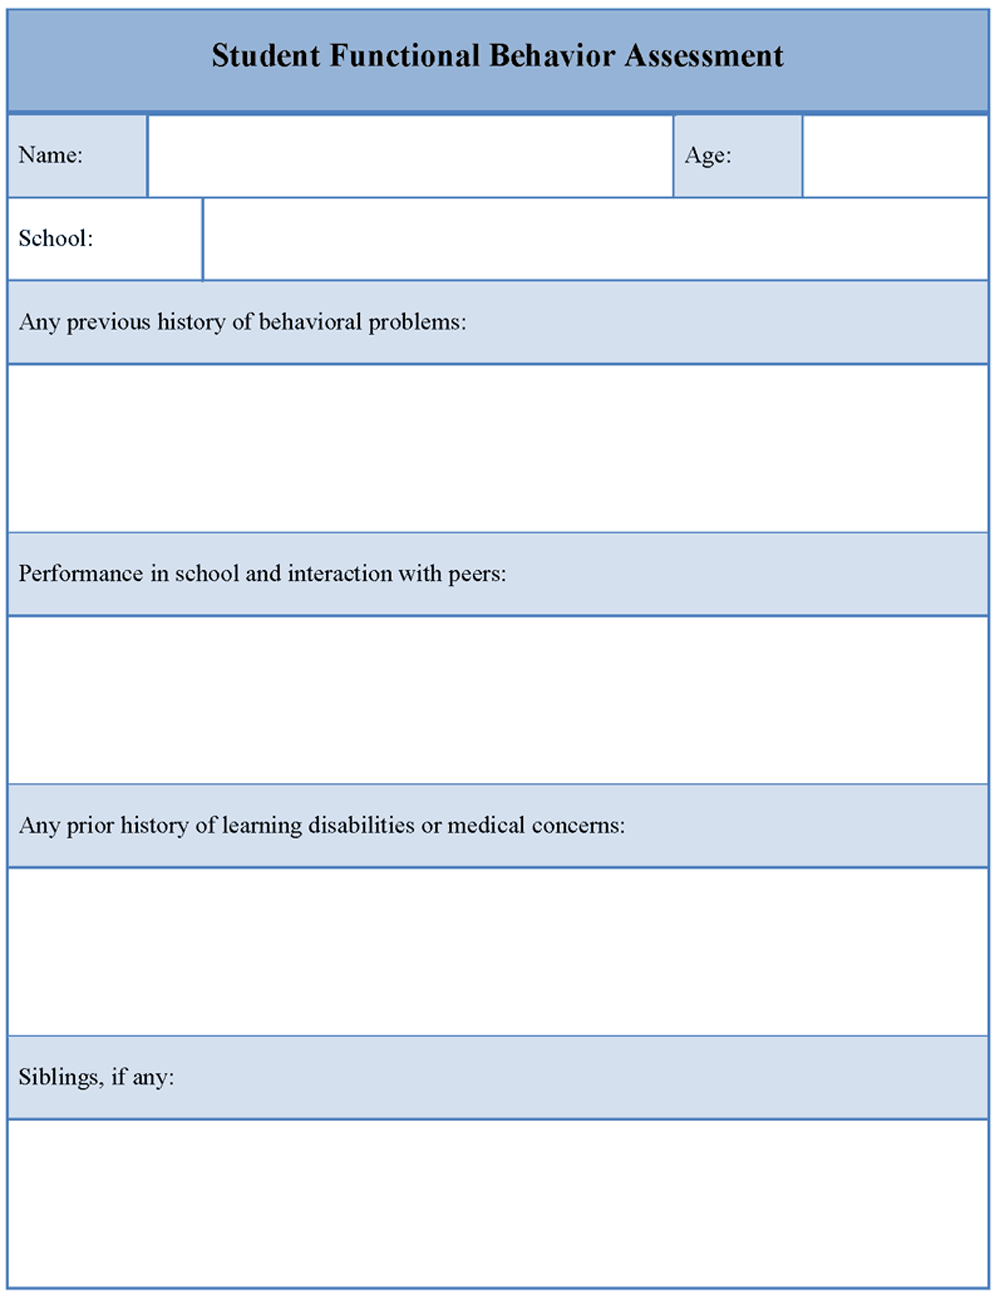 free assessment example 24.94613